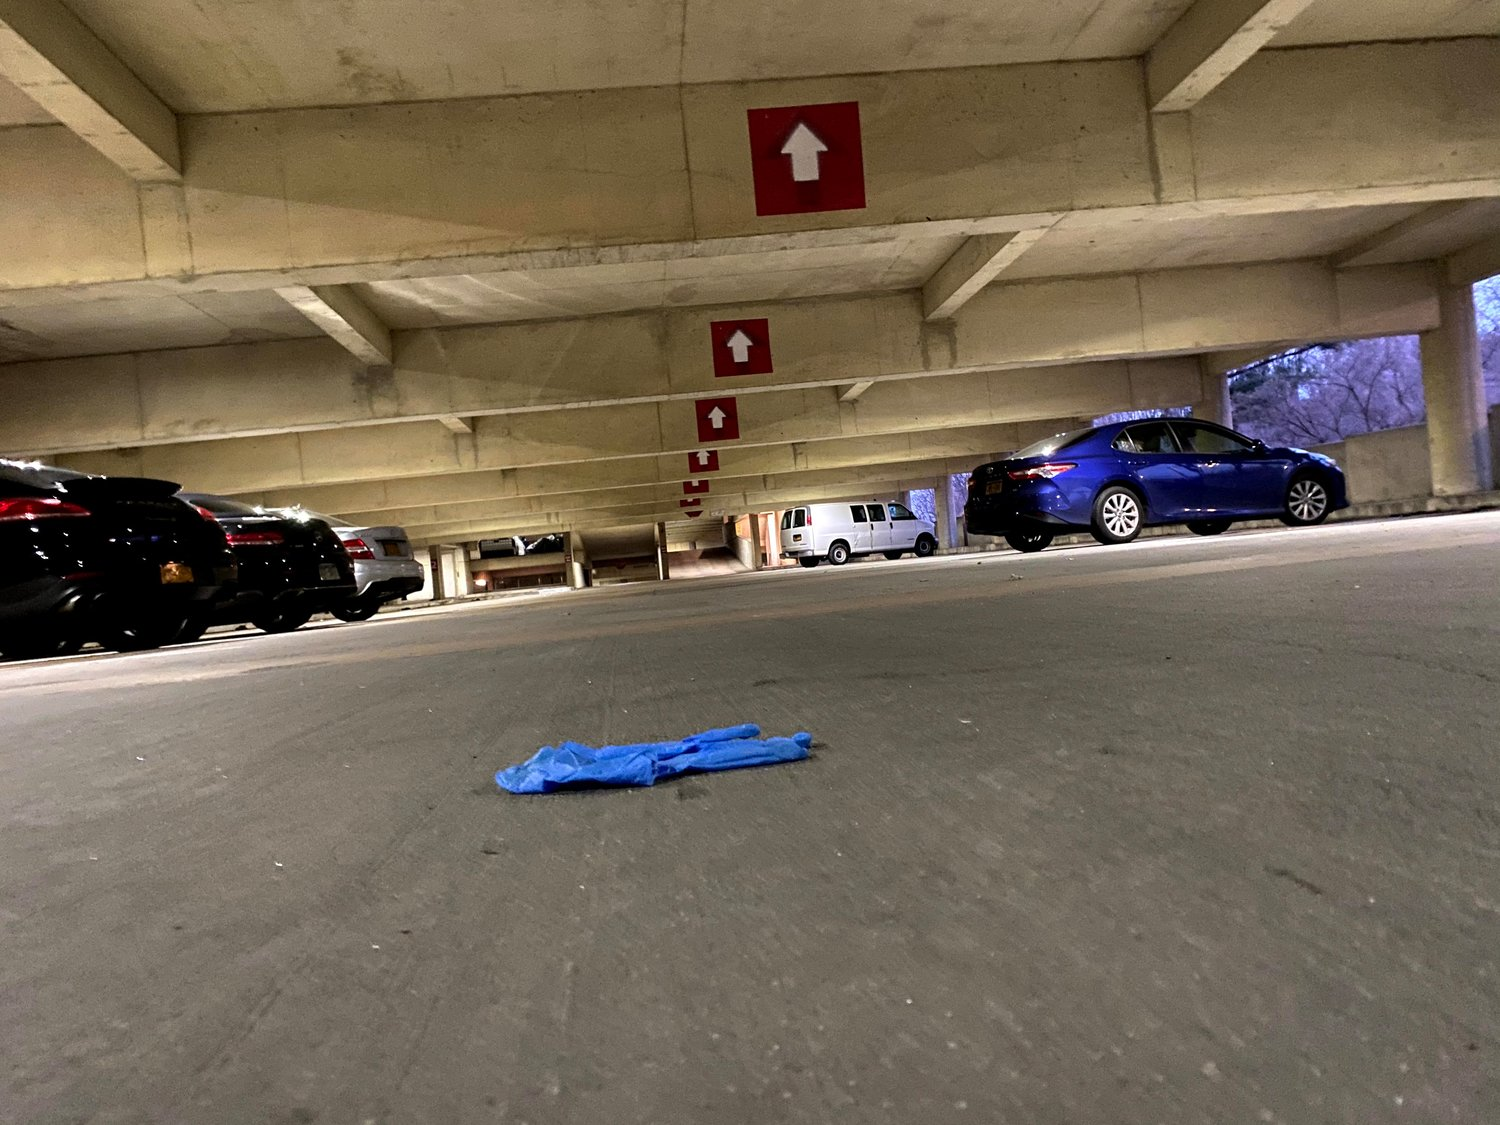 A glove left in the parking garage of downtown Glen Cove.